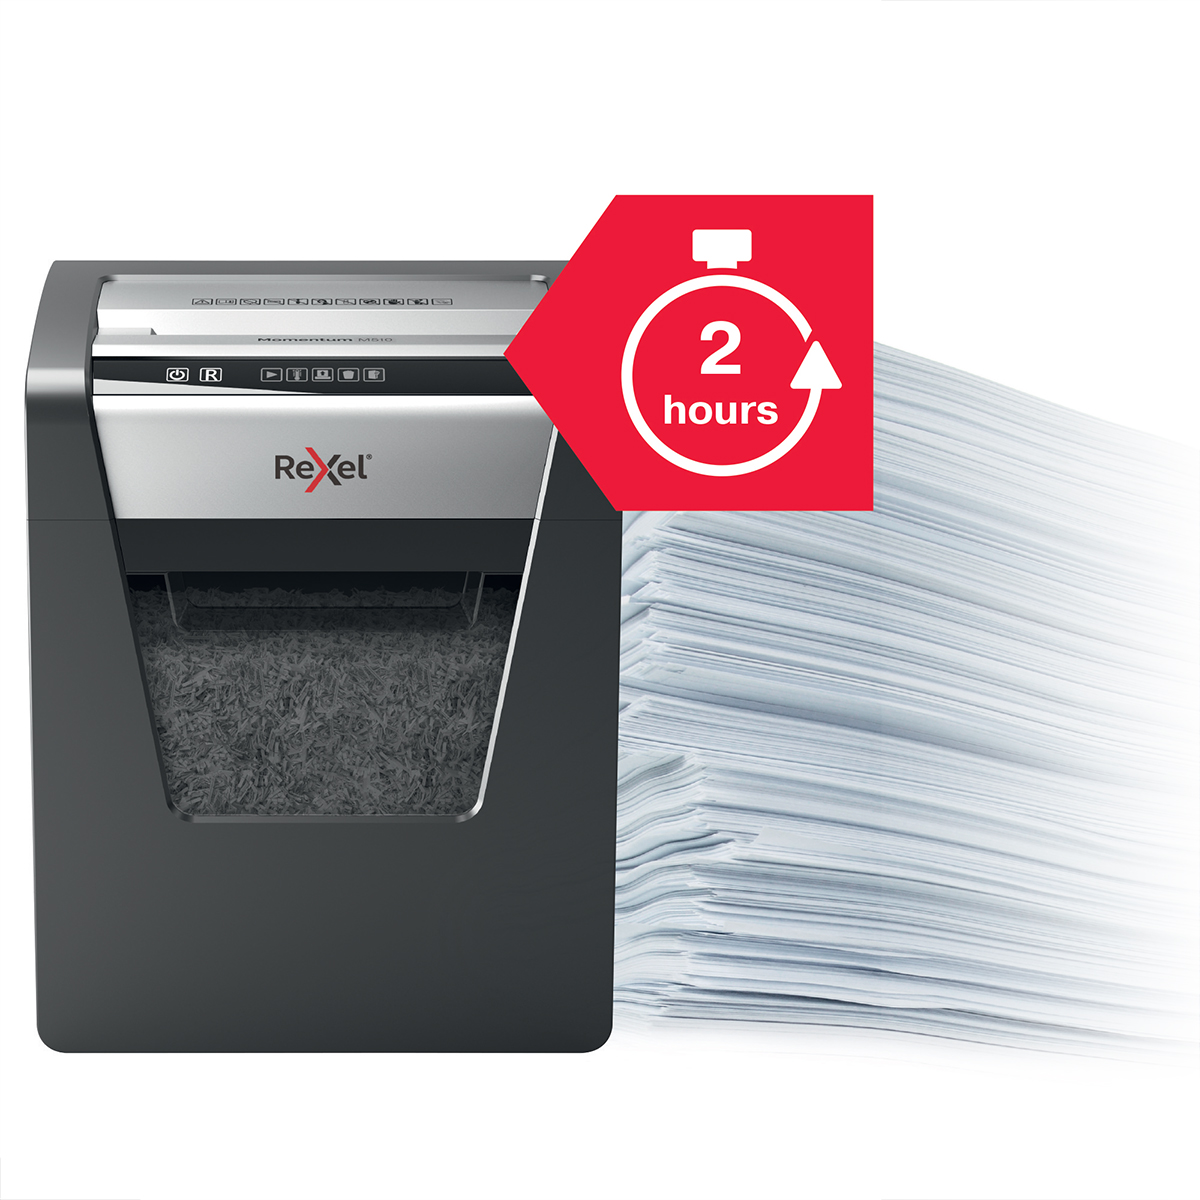 Rexel Momentum M510 Micro Cut Shredder